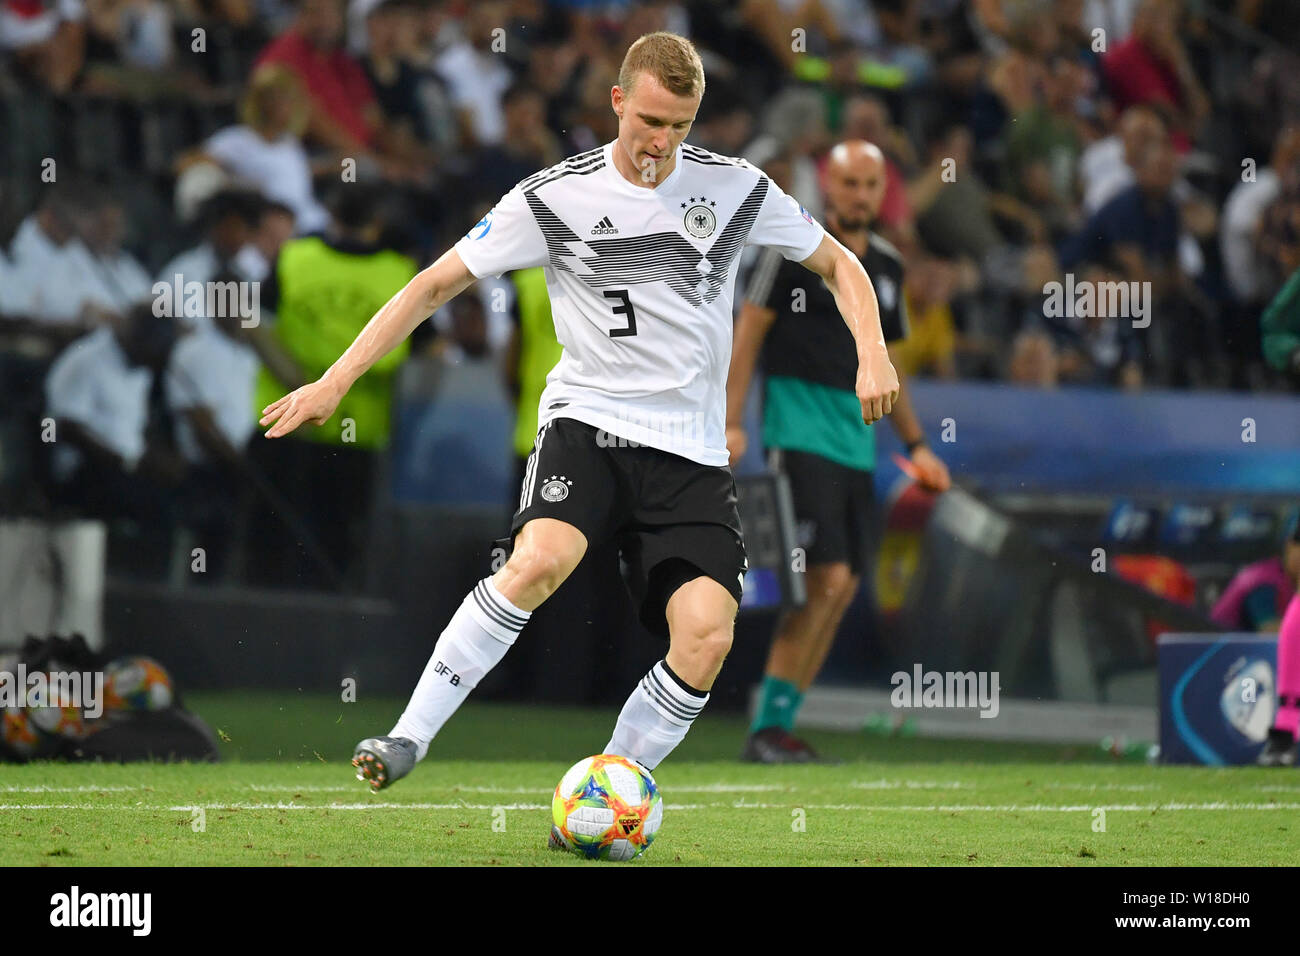 Udine, Italien. 30th June, 2019. Lukas KLOSTERMANN (GER), action, individual action, single image, cut out, full body shot, whole figure. Spain (ESP) - Germany (GER) 2-1, at 30.06.2019 Stadio Friuli Udine. Football U-21, FINALE UEFA Under21 European Championship in Italy/SanMarino from 16.-30.06.2019. | Usage worldwide Credit: dpa/Alamy Live News - Stock Image